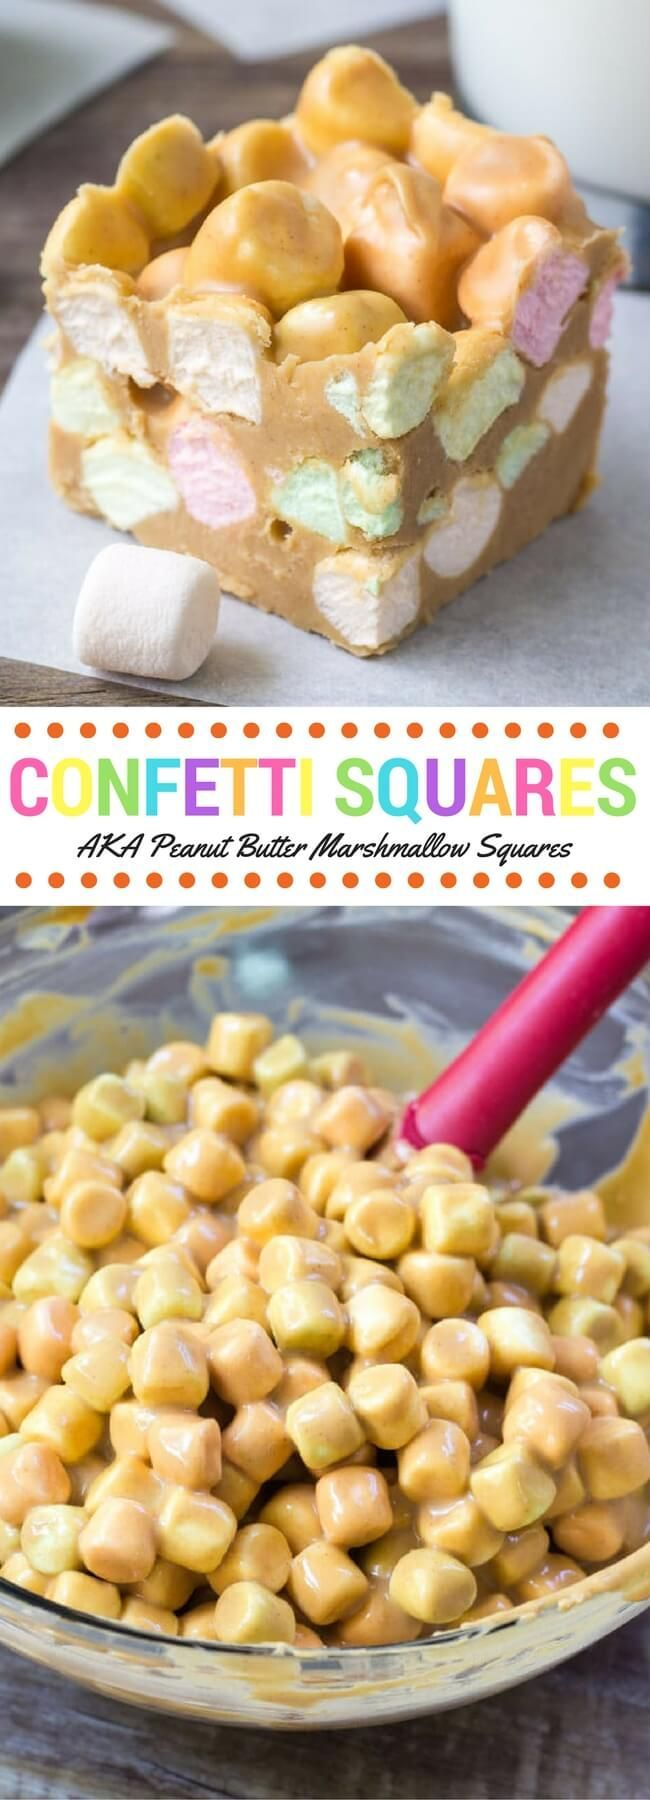 Confetti squares just like grandma made! Also known as peanut butter marshmallow squares - these are no bake, only 4 ingredients, soft, chewy, peanut buttery & completely addictive!